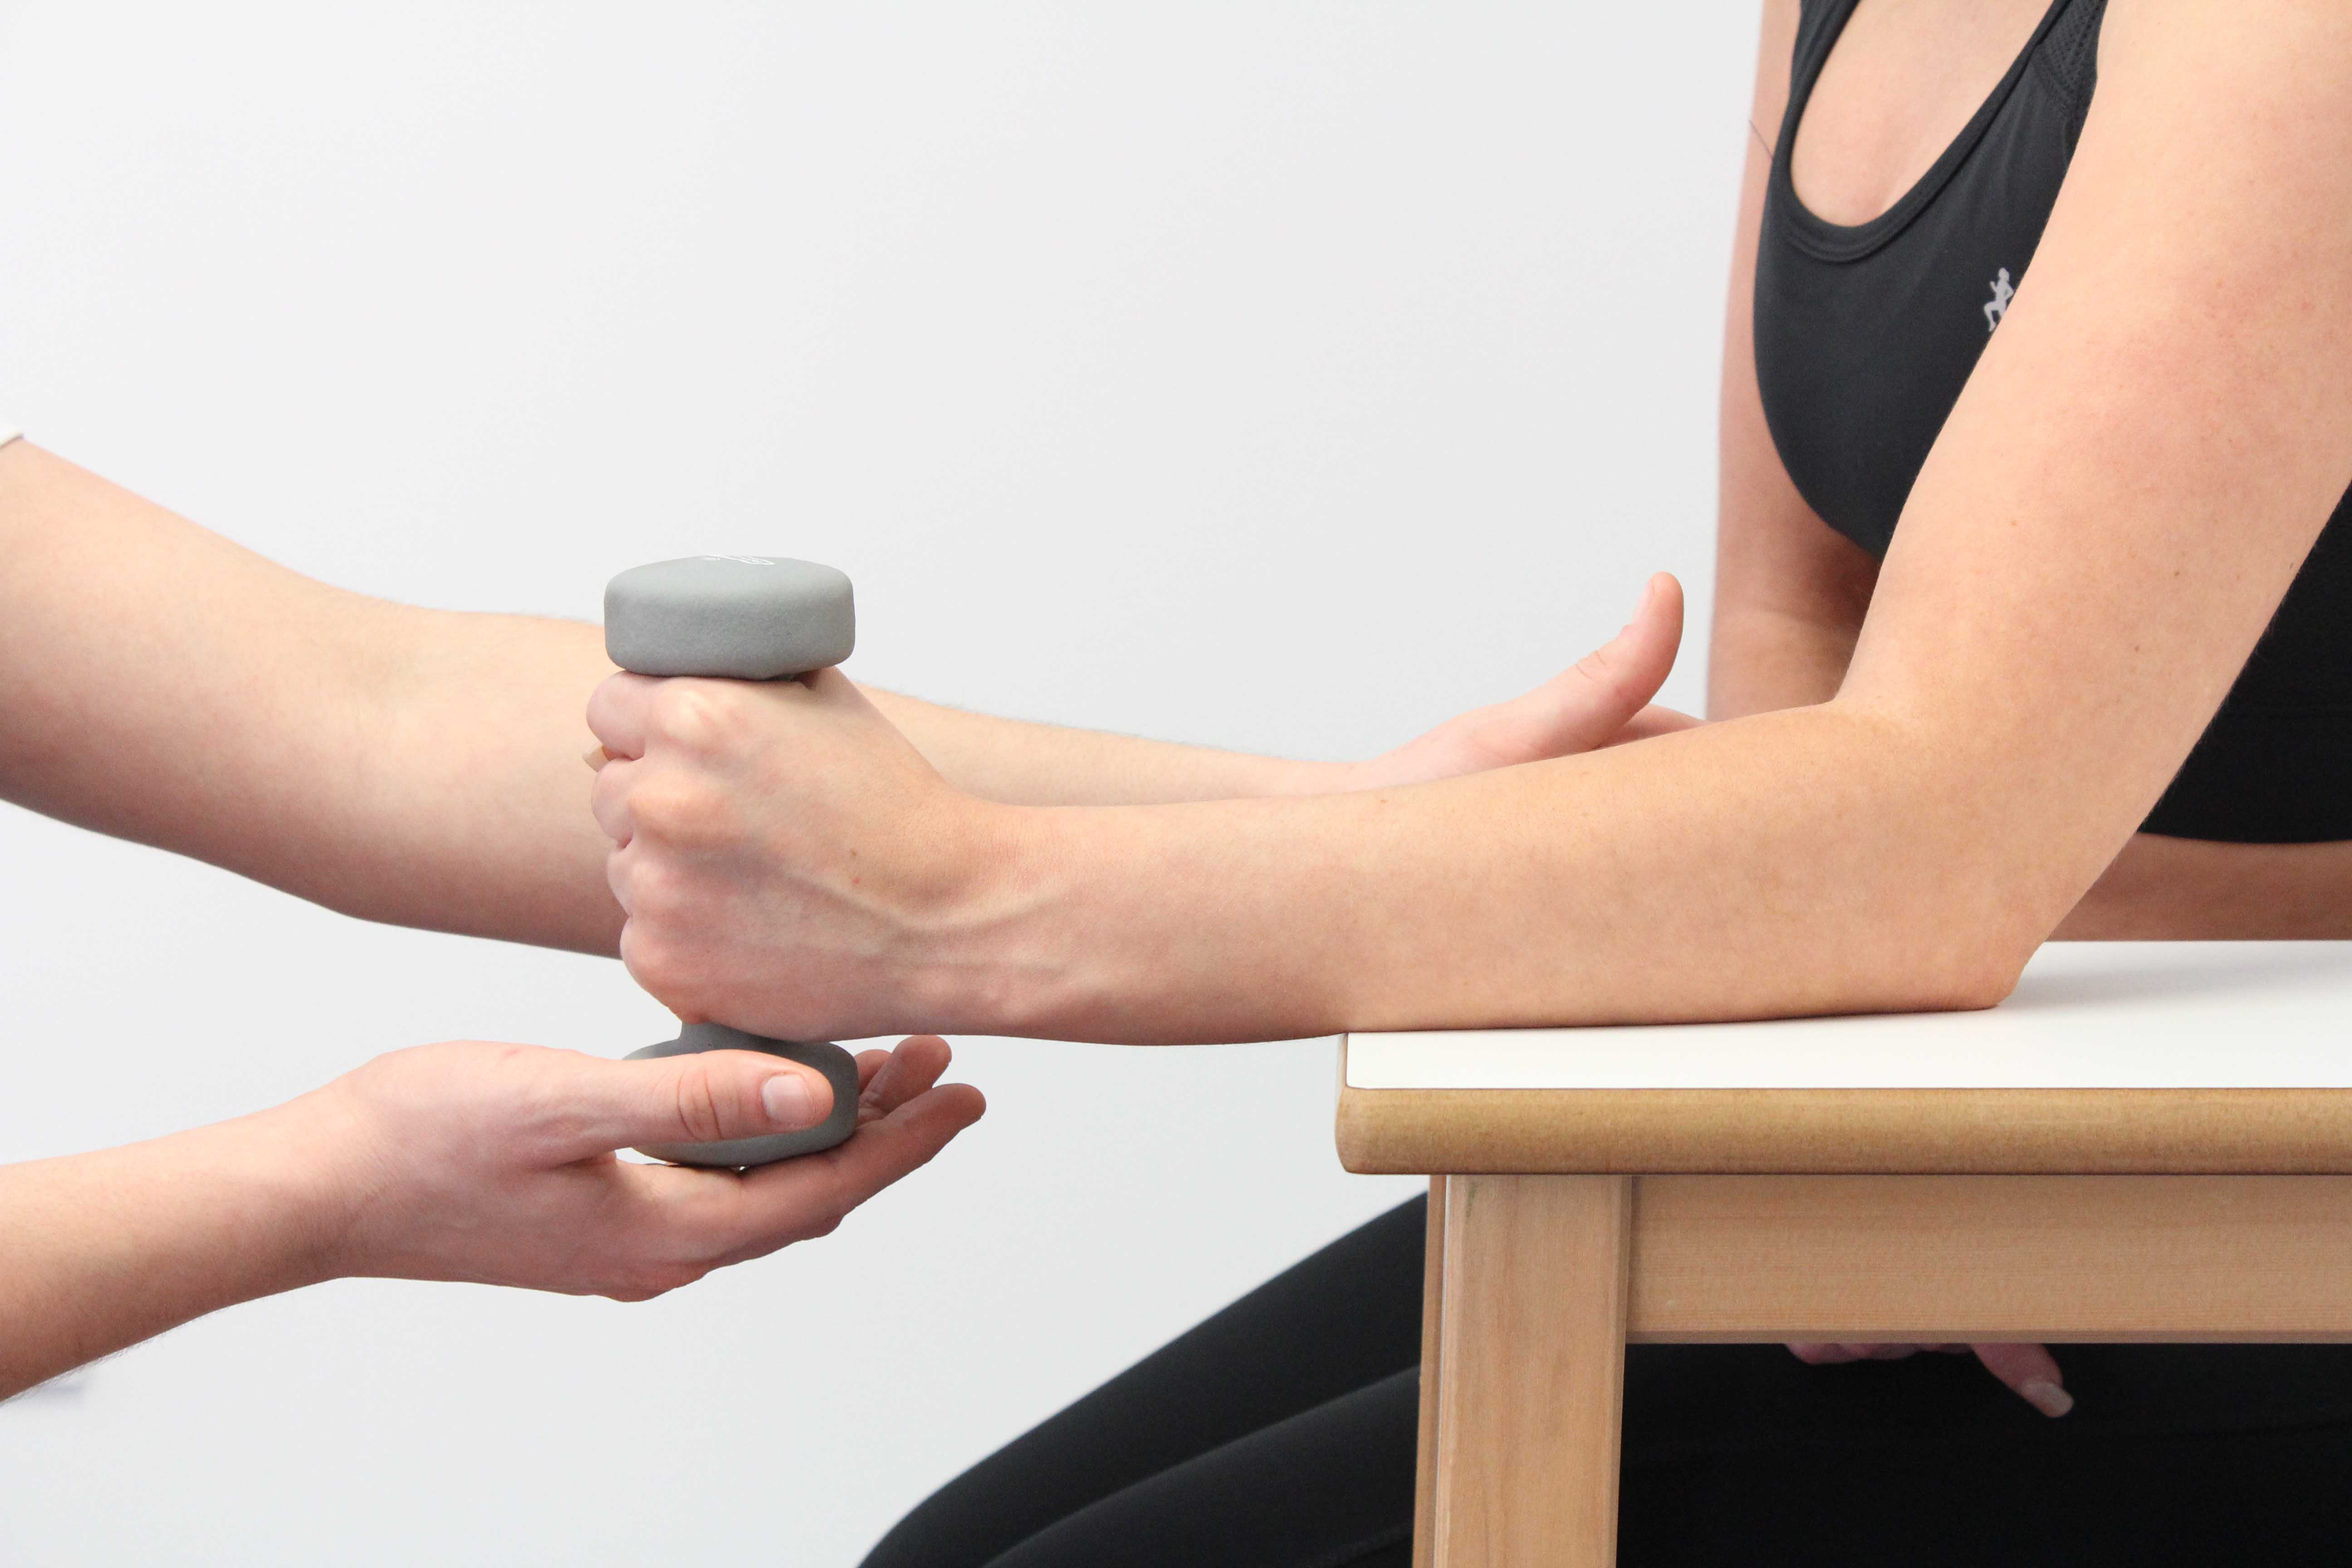 Progressive wrist strengthening exercises supervised by physiotherapist